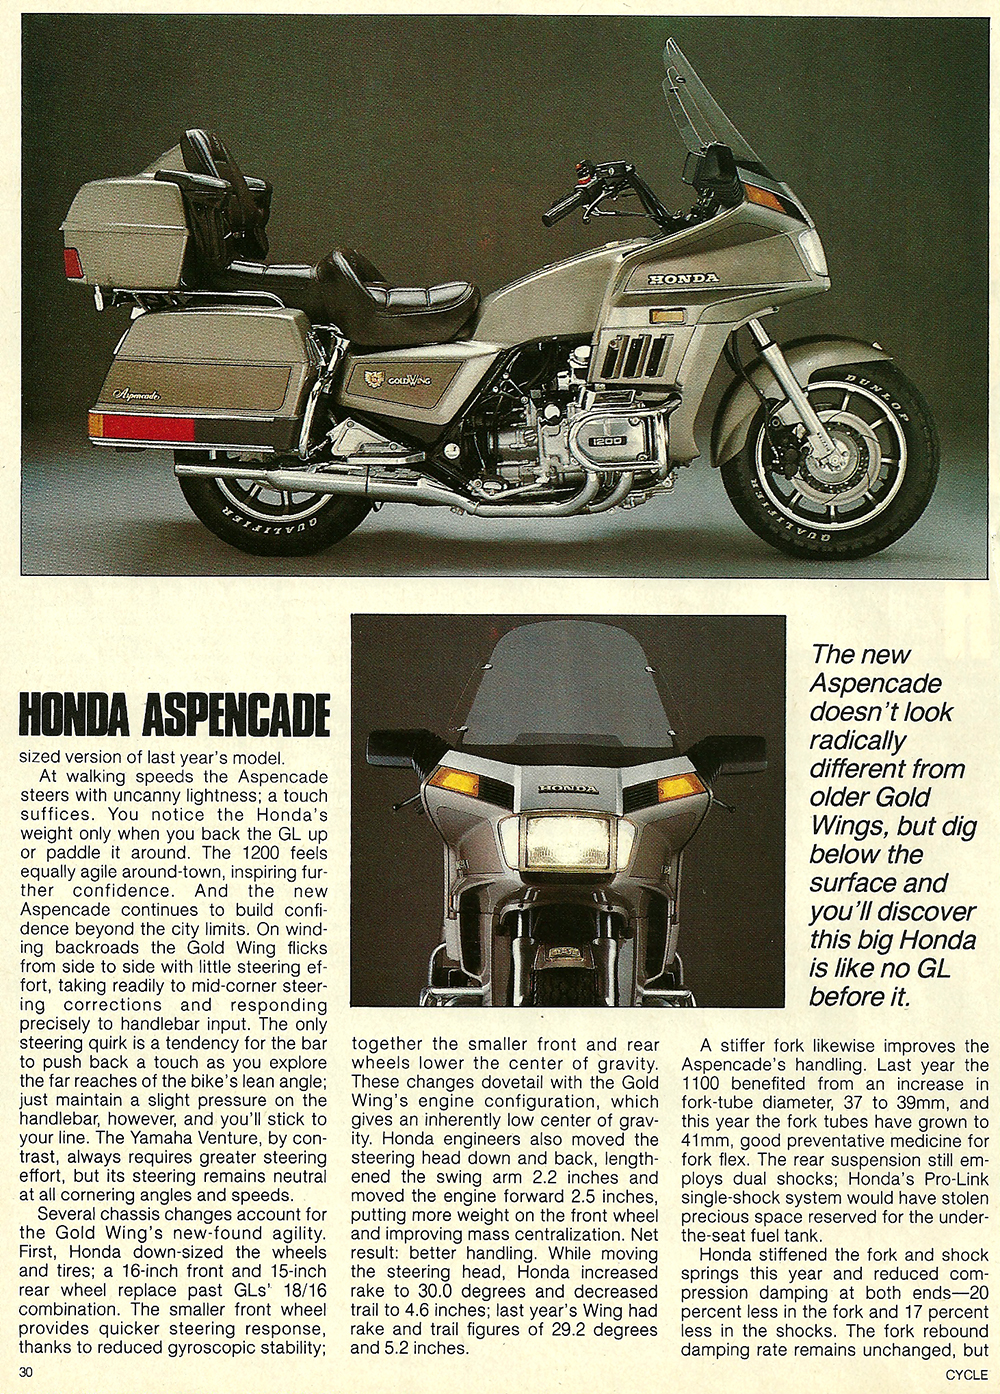 1984 Honda GL1200A Gold Wing Aspencade road test 3.jpg